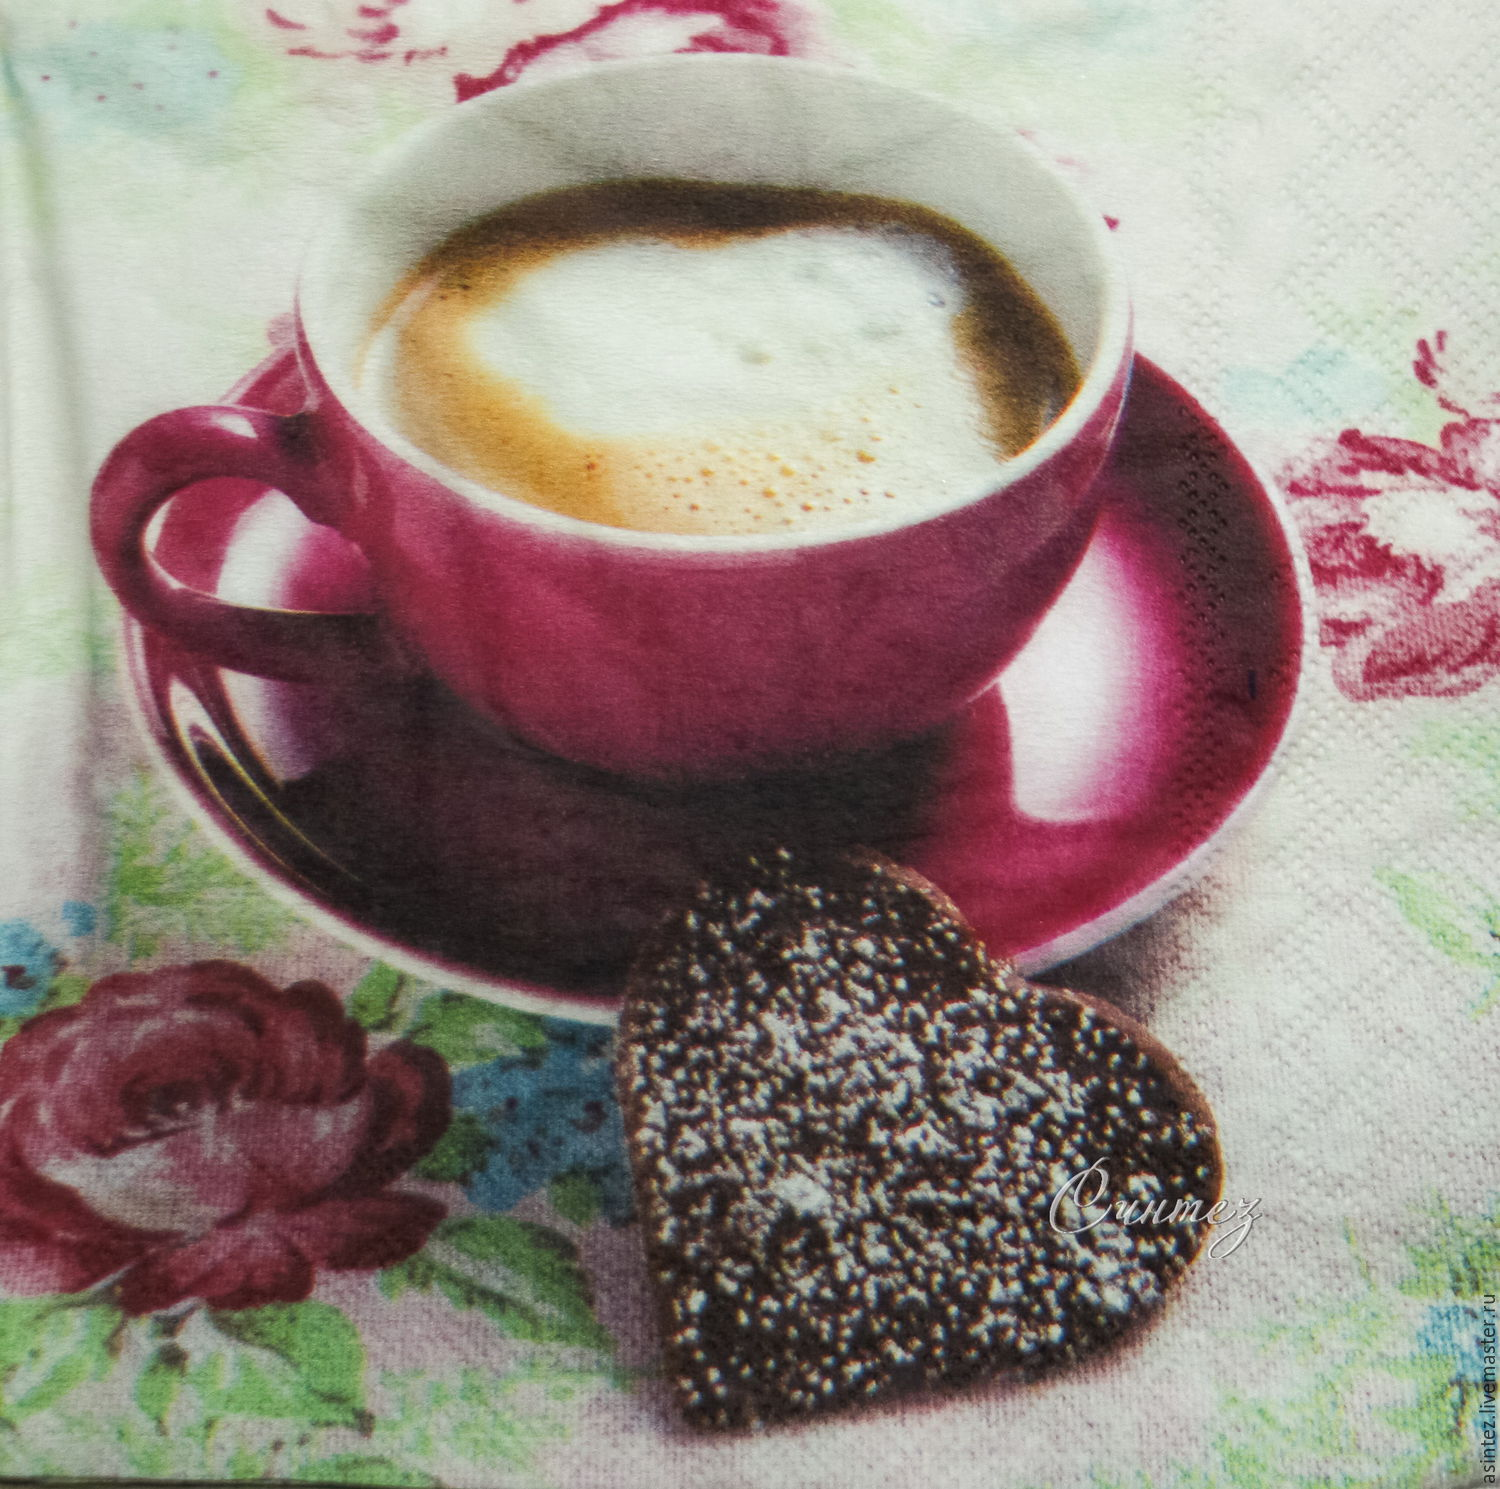 5pcs napkins for decoupage a Cup of coffee with gingerbread heart, Napkins for decoupage, Moscow,  Фото №1